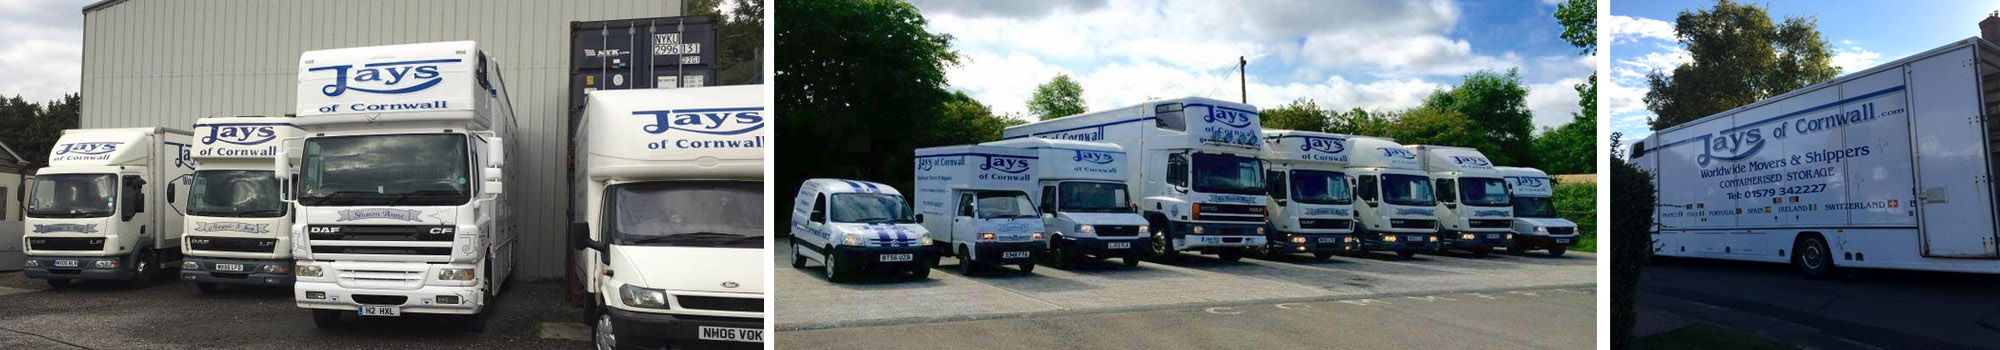 Removals In Cornwall